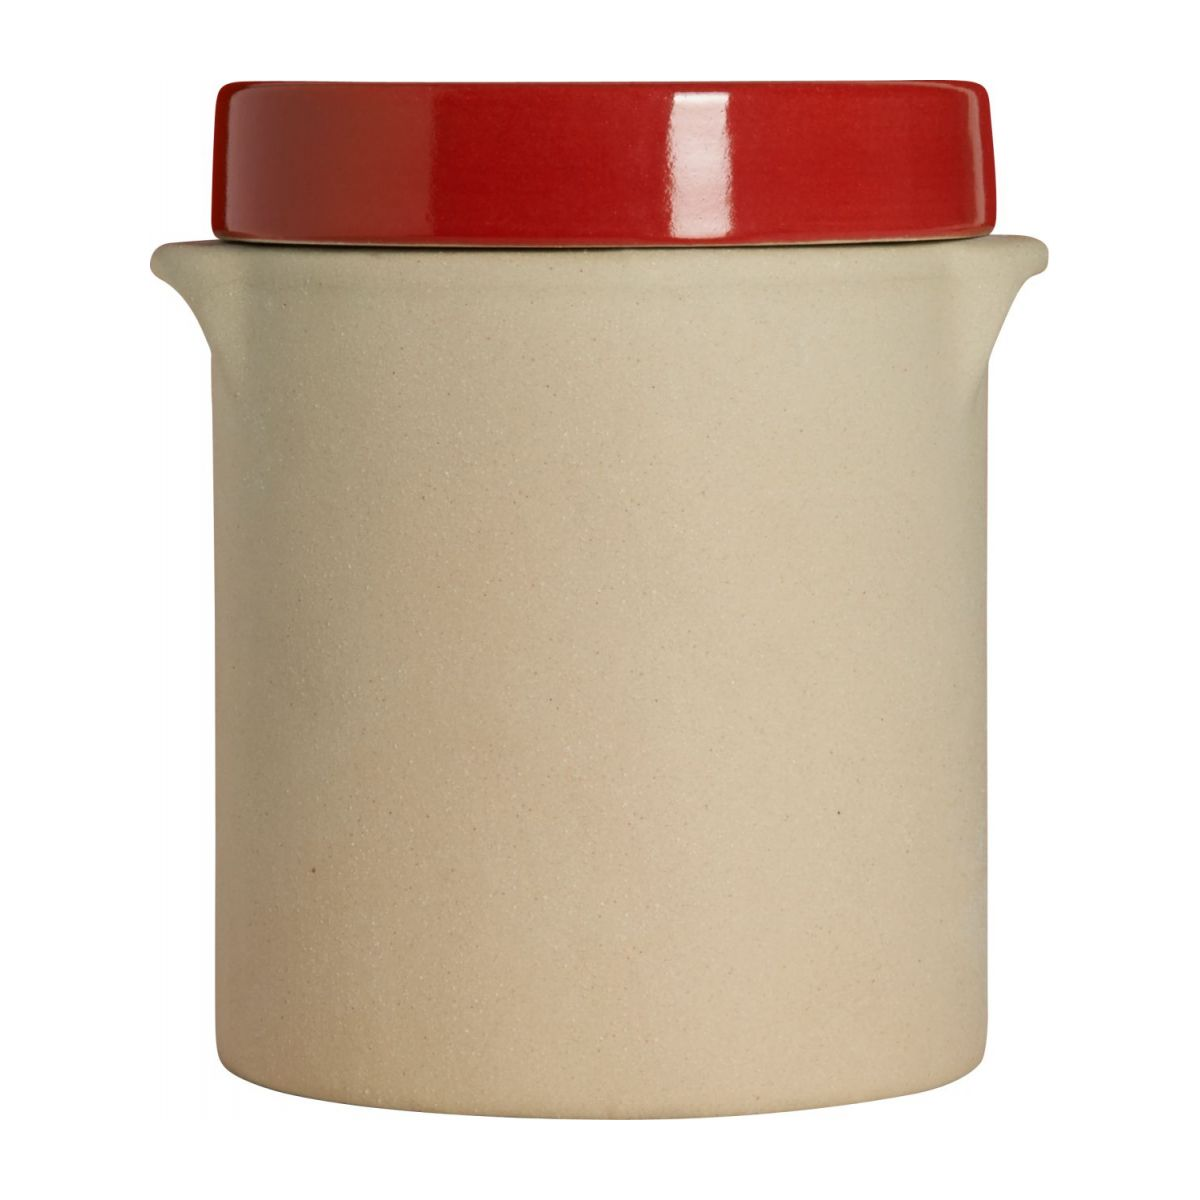 Box made in sandstone - 1L, natural and red n°4